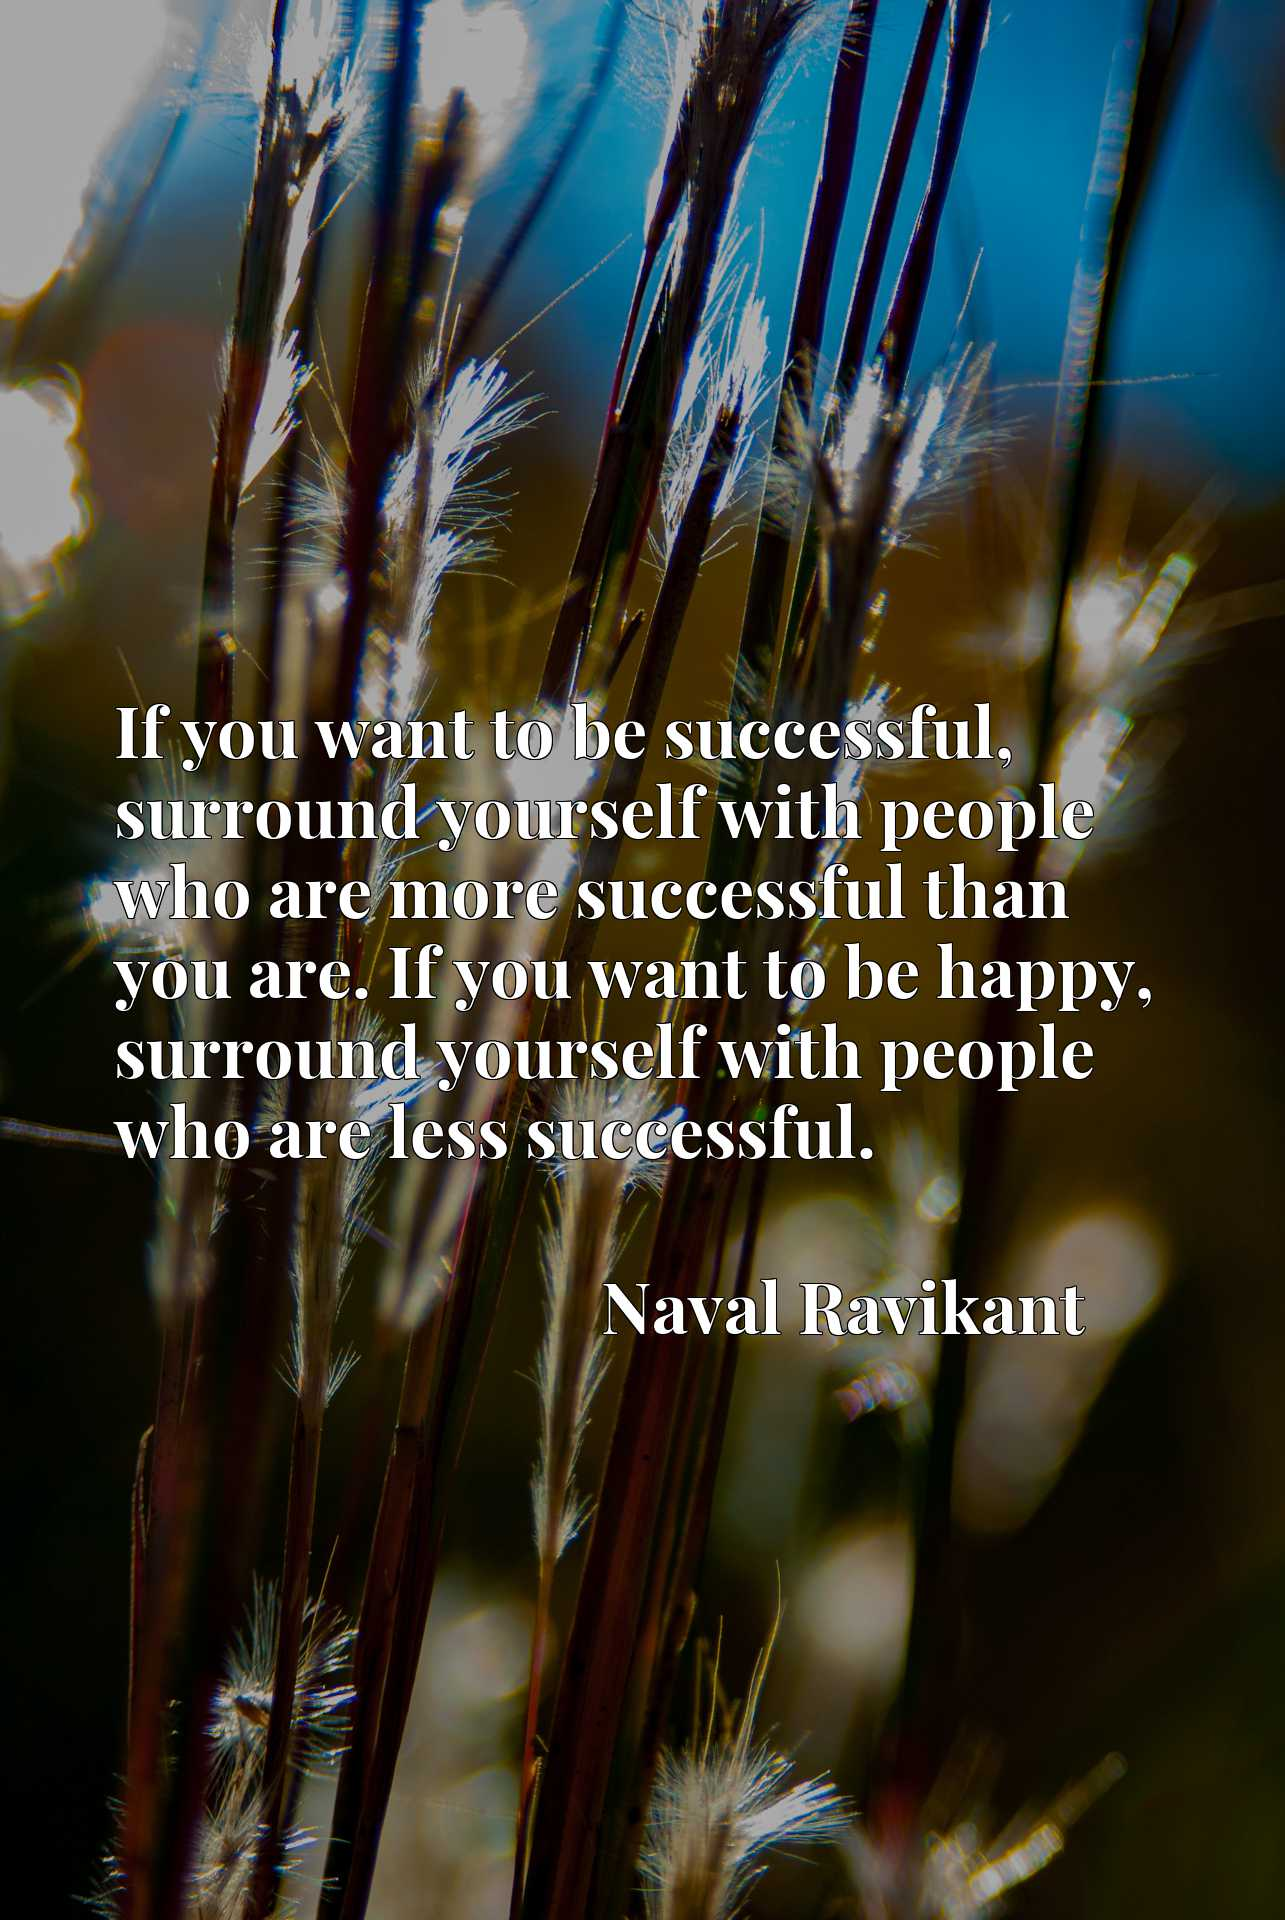 If you want to be successful, surround yourself with people who are more successful than you are. If you want to be happy, surround yourself with people who are less successful.